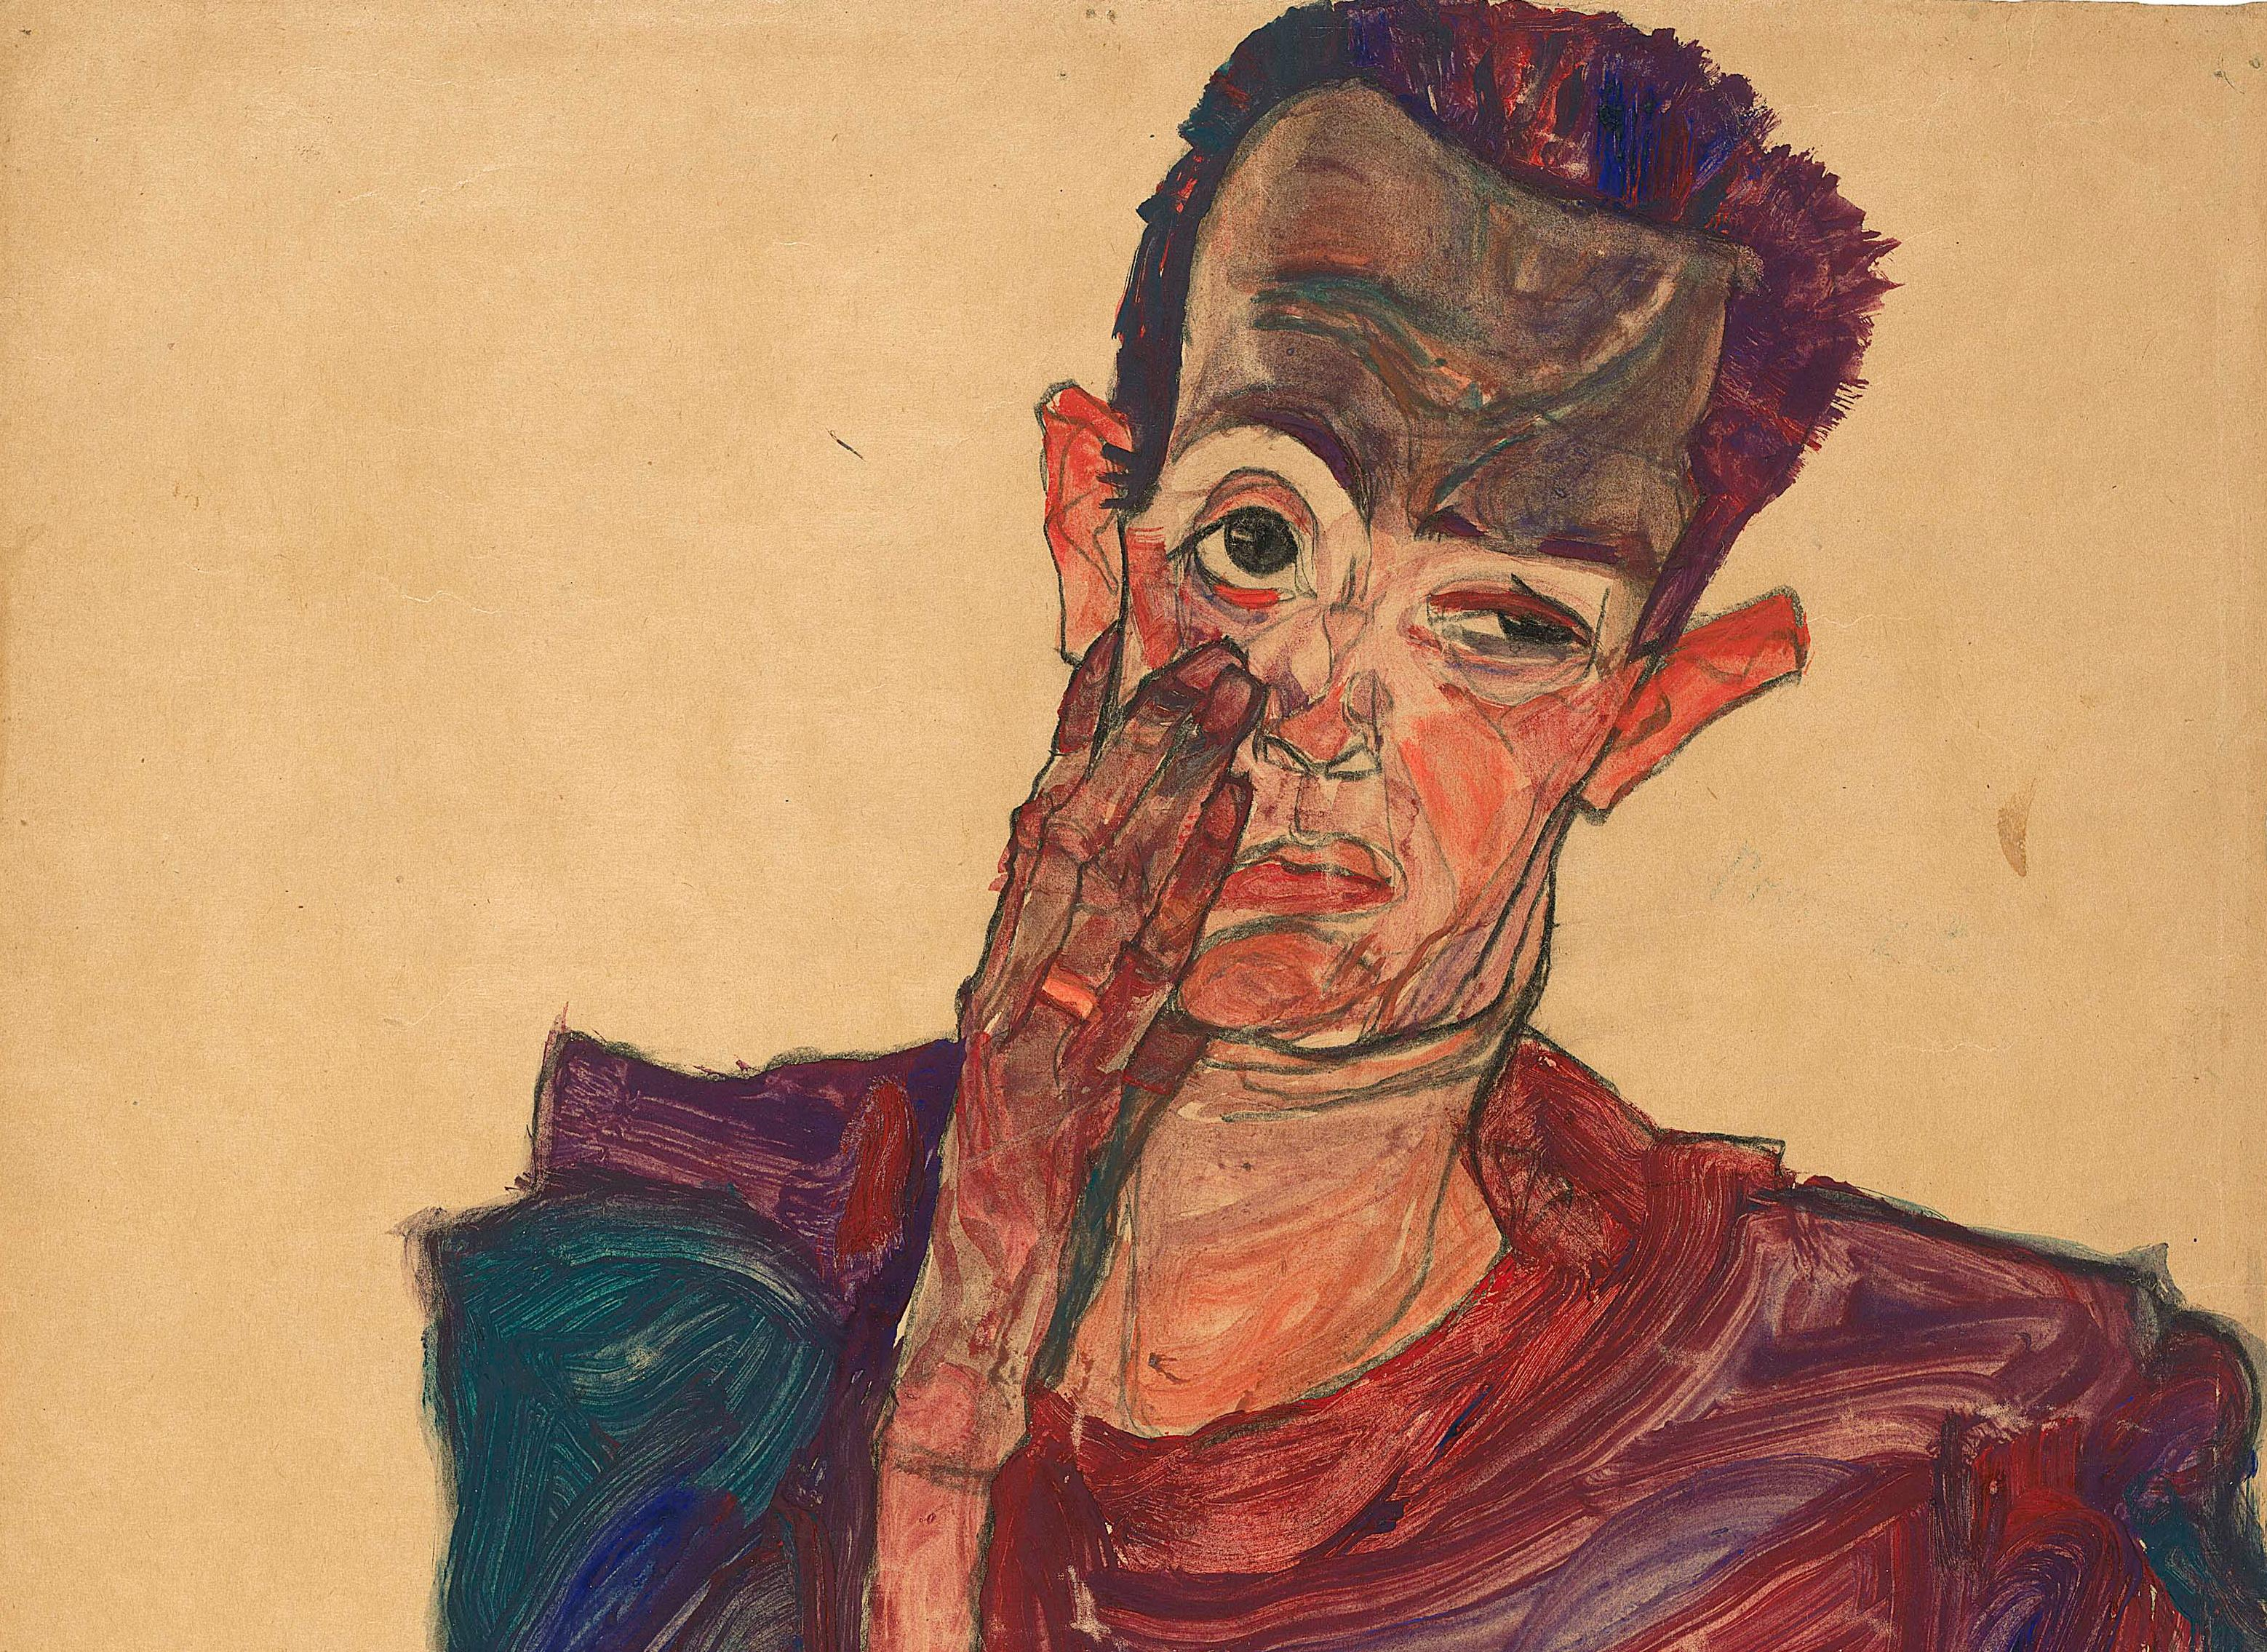 Klimt / Schiele review – their obsessions were mutual